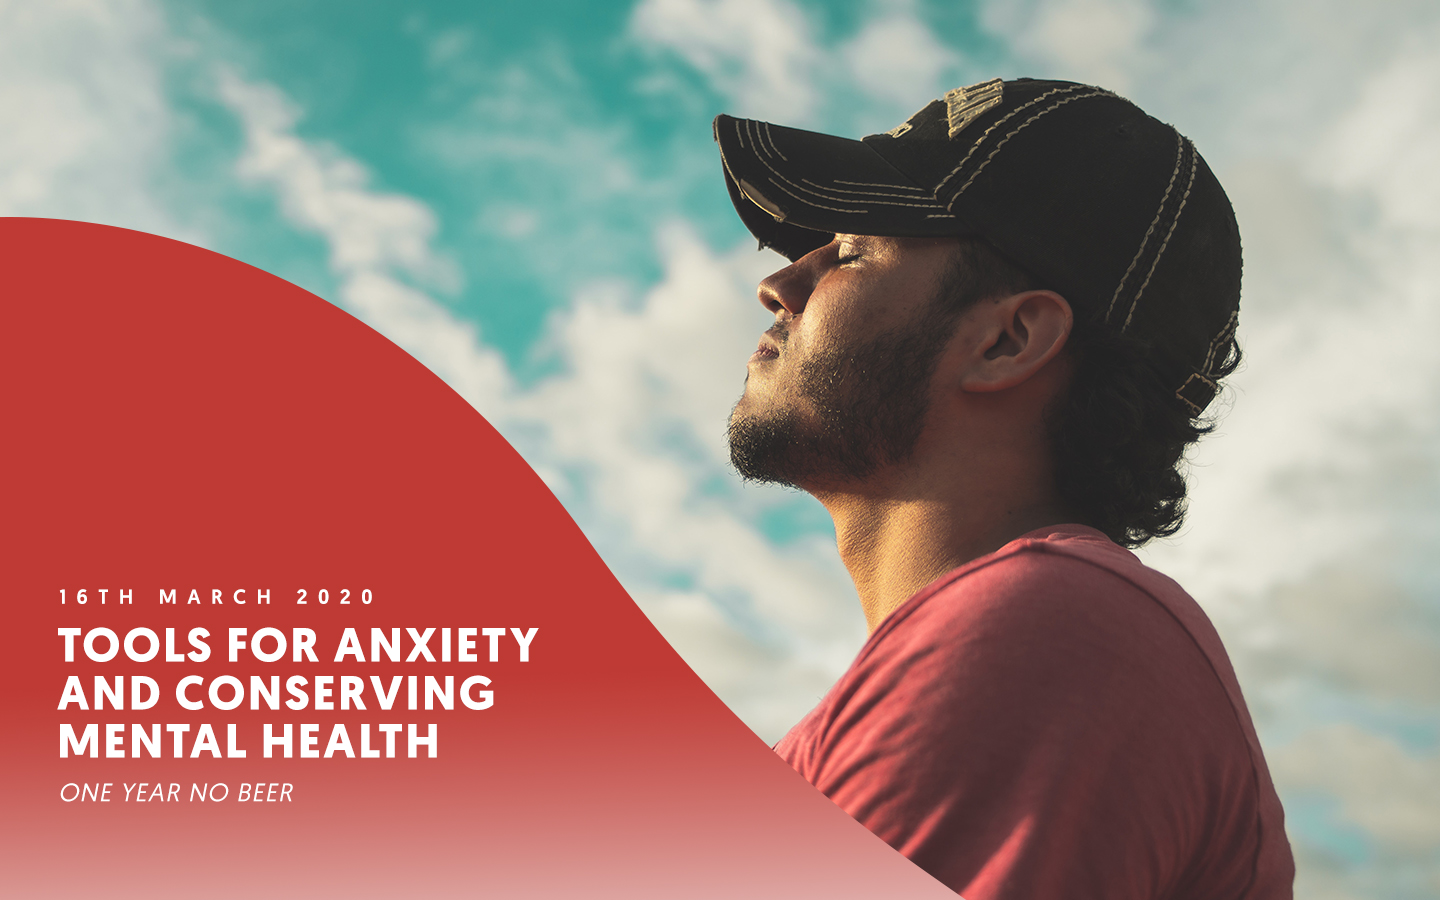 Tools for anxiety and conserving mental health